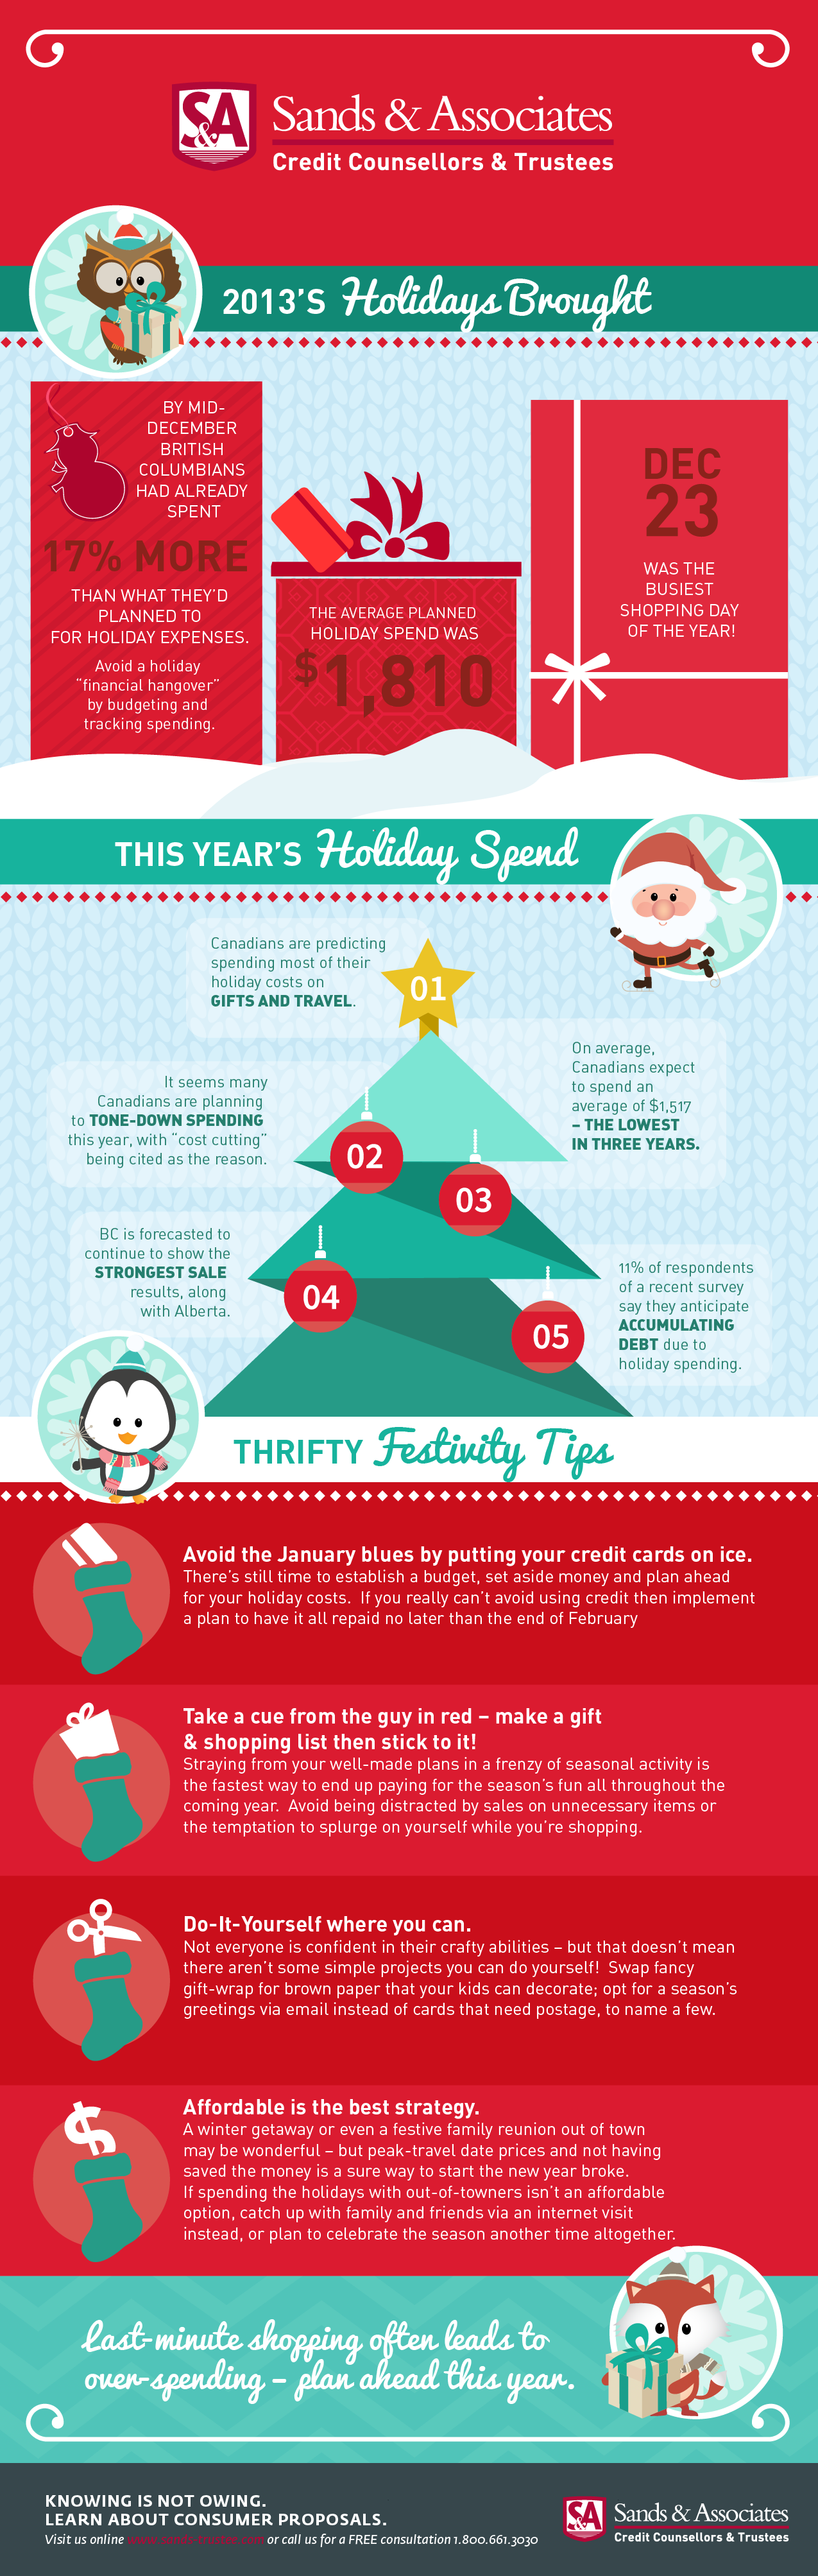 Holiday Spending Infographic - Sands & Associates